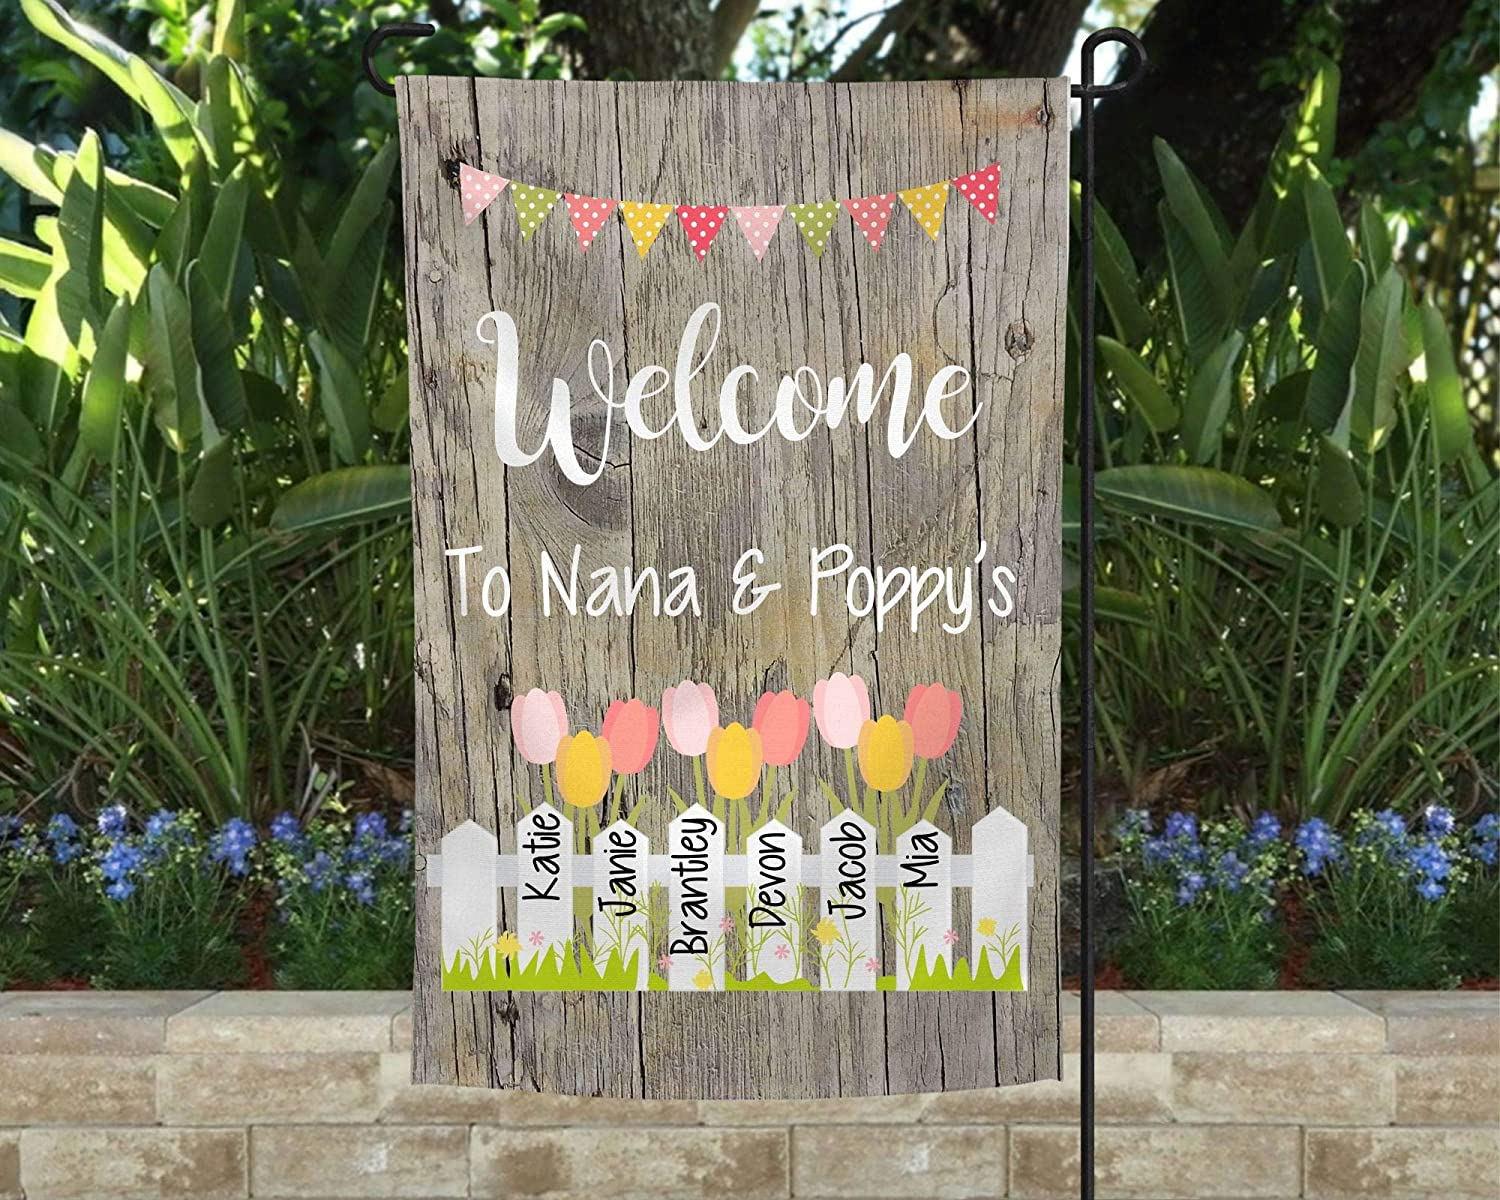 Promini Personalized Grandma Flag with Grandkids Names, Garden Flag for Grandma